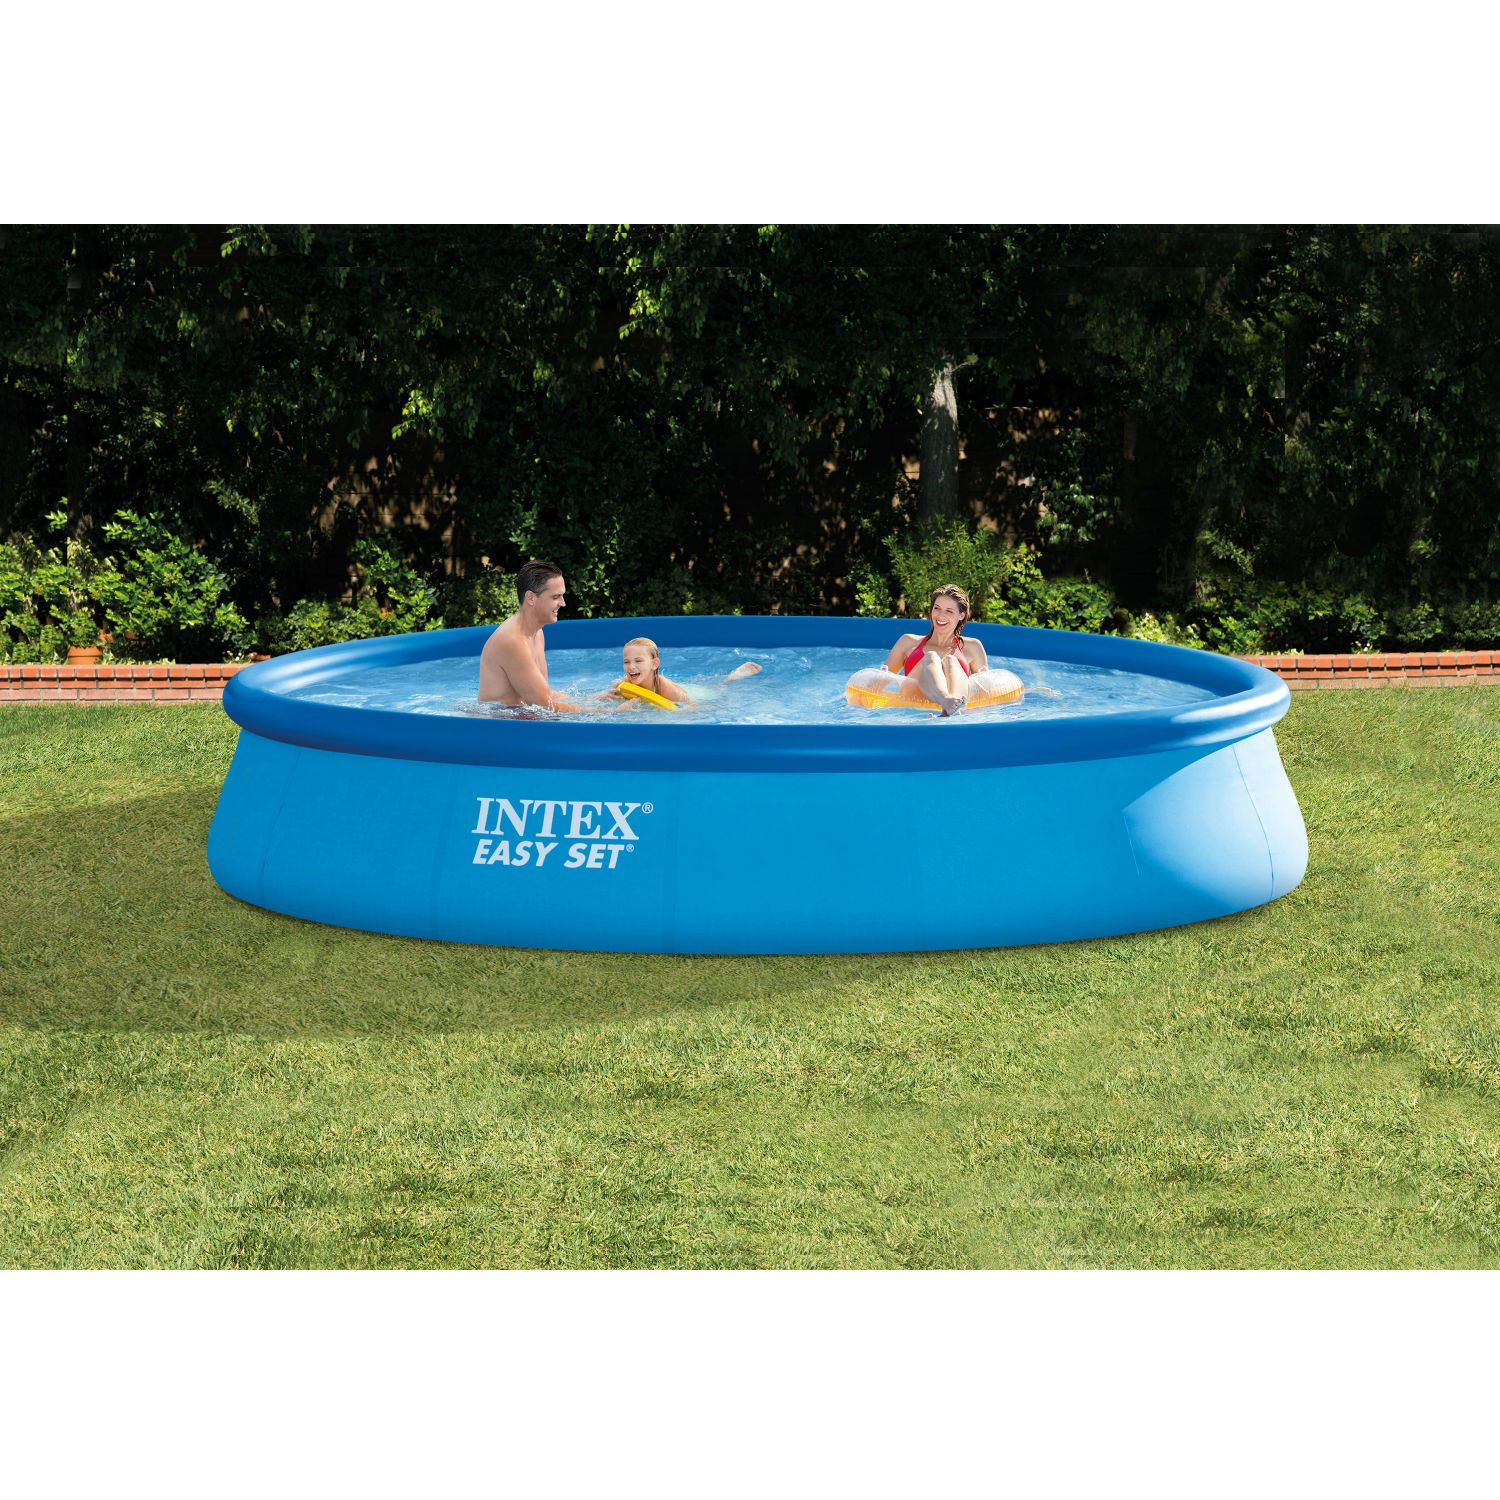 Intex 13 X 33 Easy Set Above Ground Pool With Filter Pump Walmart Com Swimming Pool Kits Easy Set Pools Intex Swimming Pool